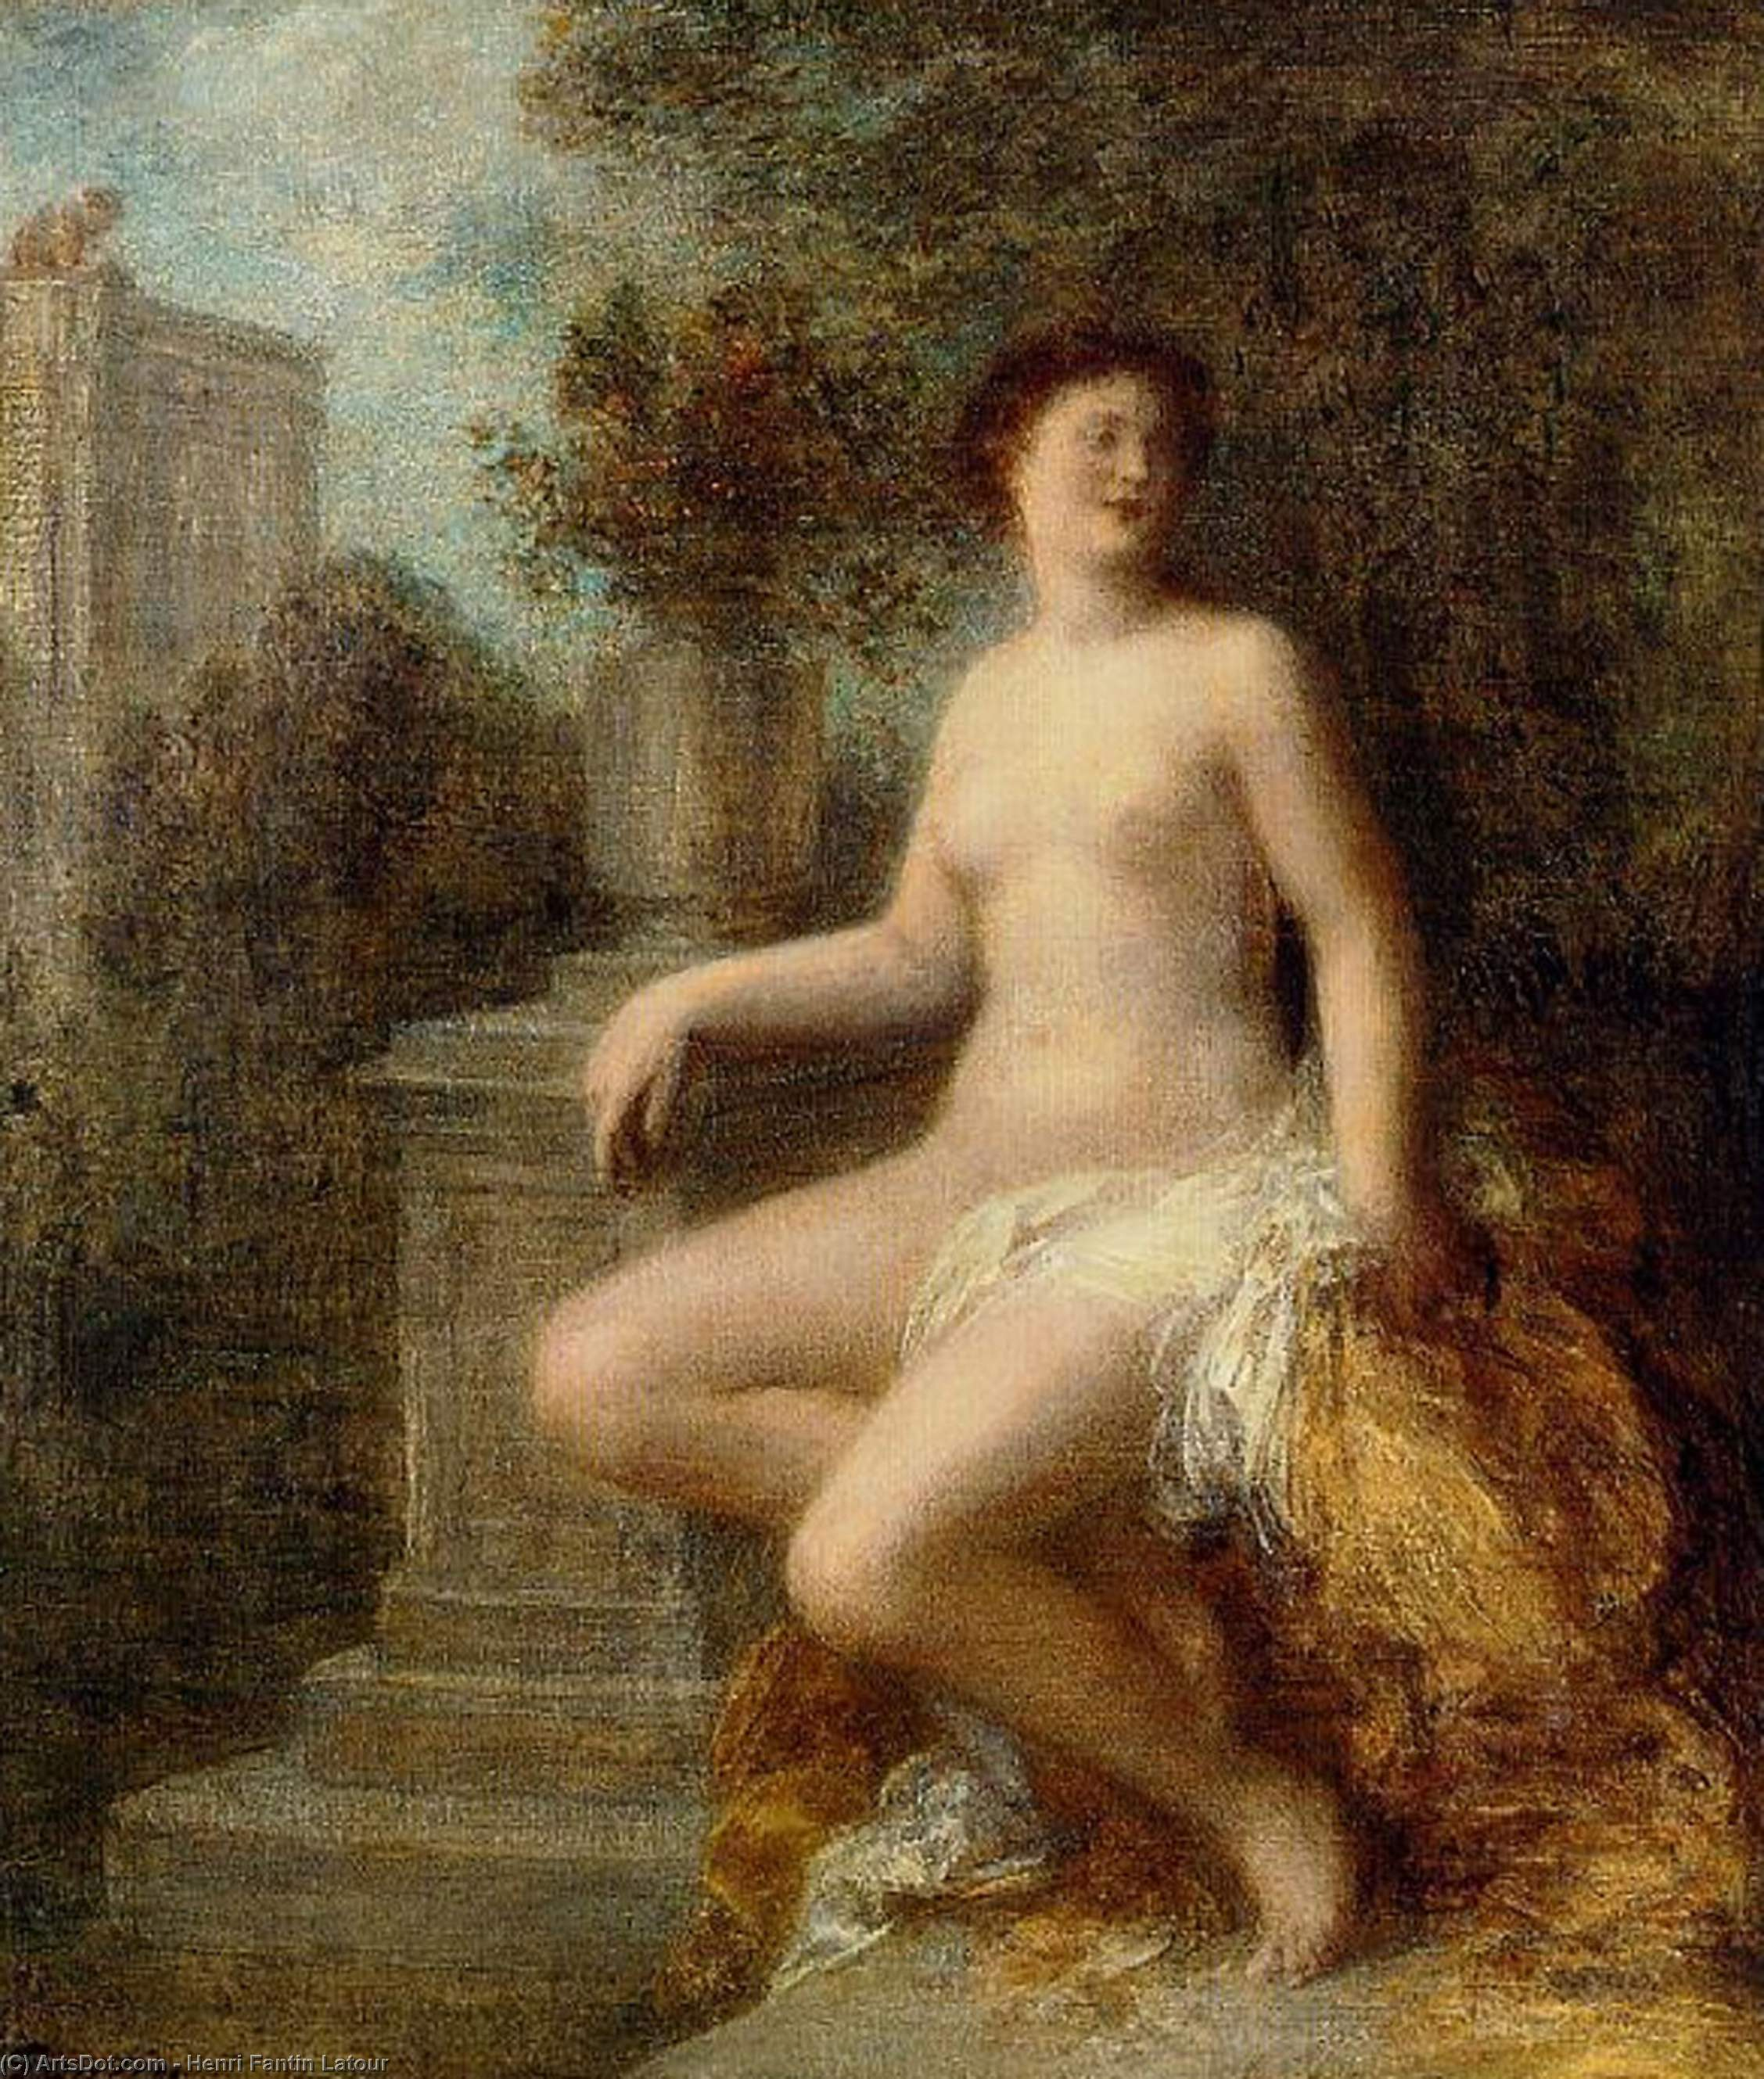 Bathsheba, Oil by Henri Fantin Latour (1836-1904, France)